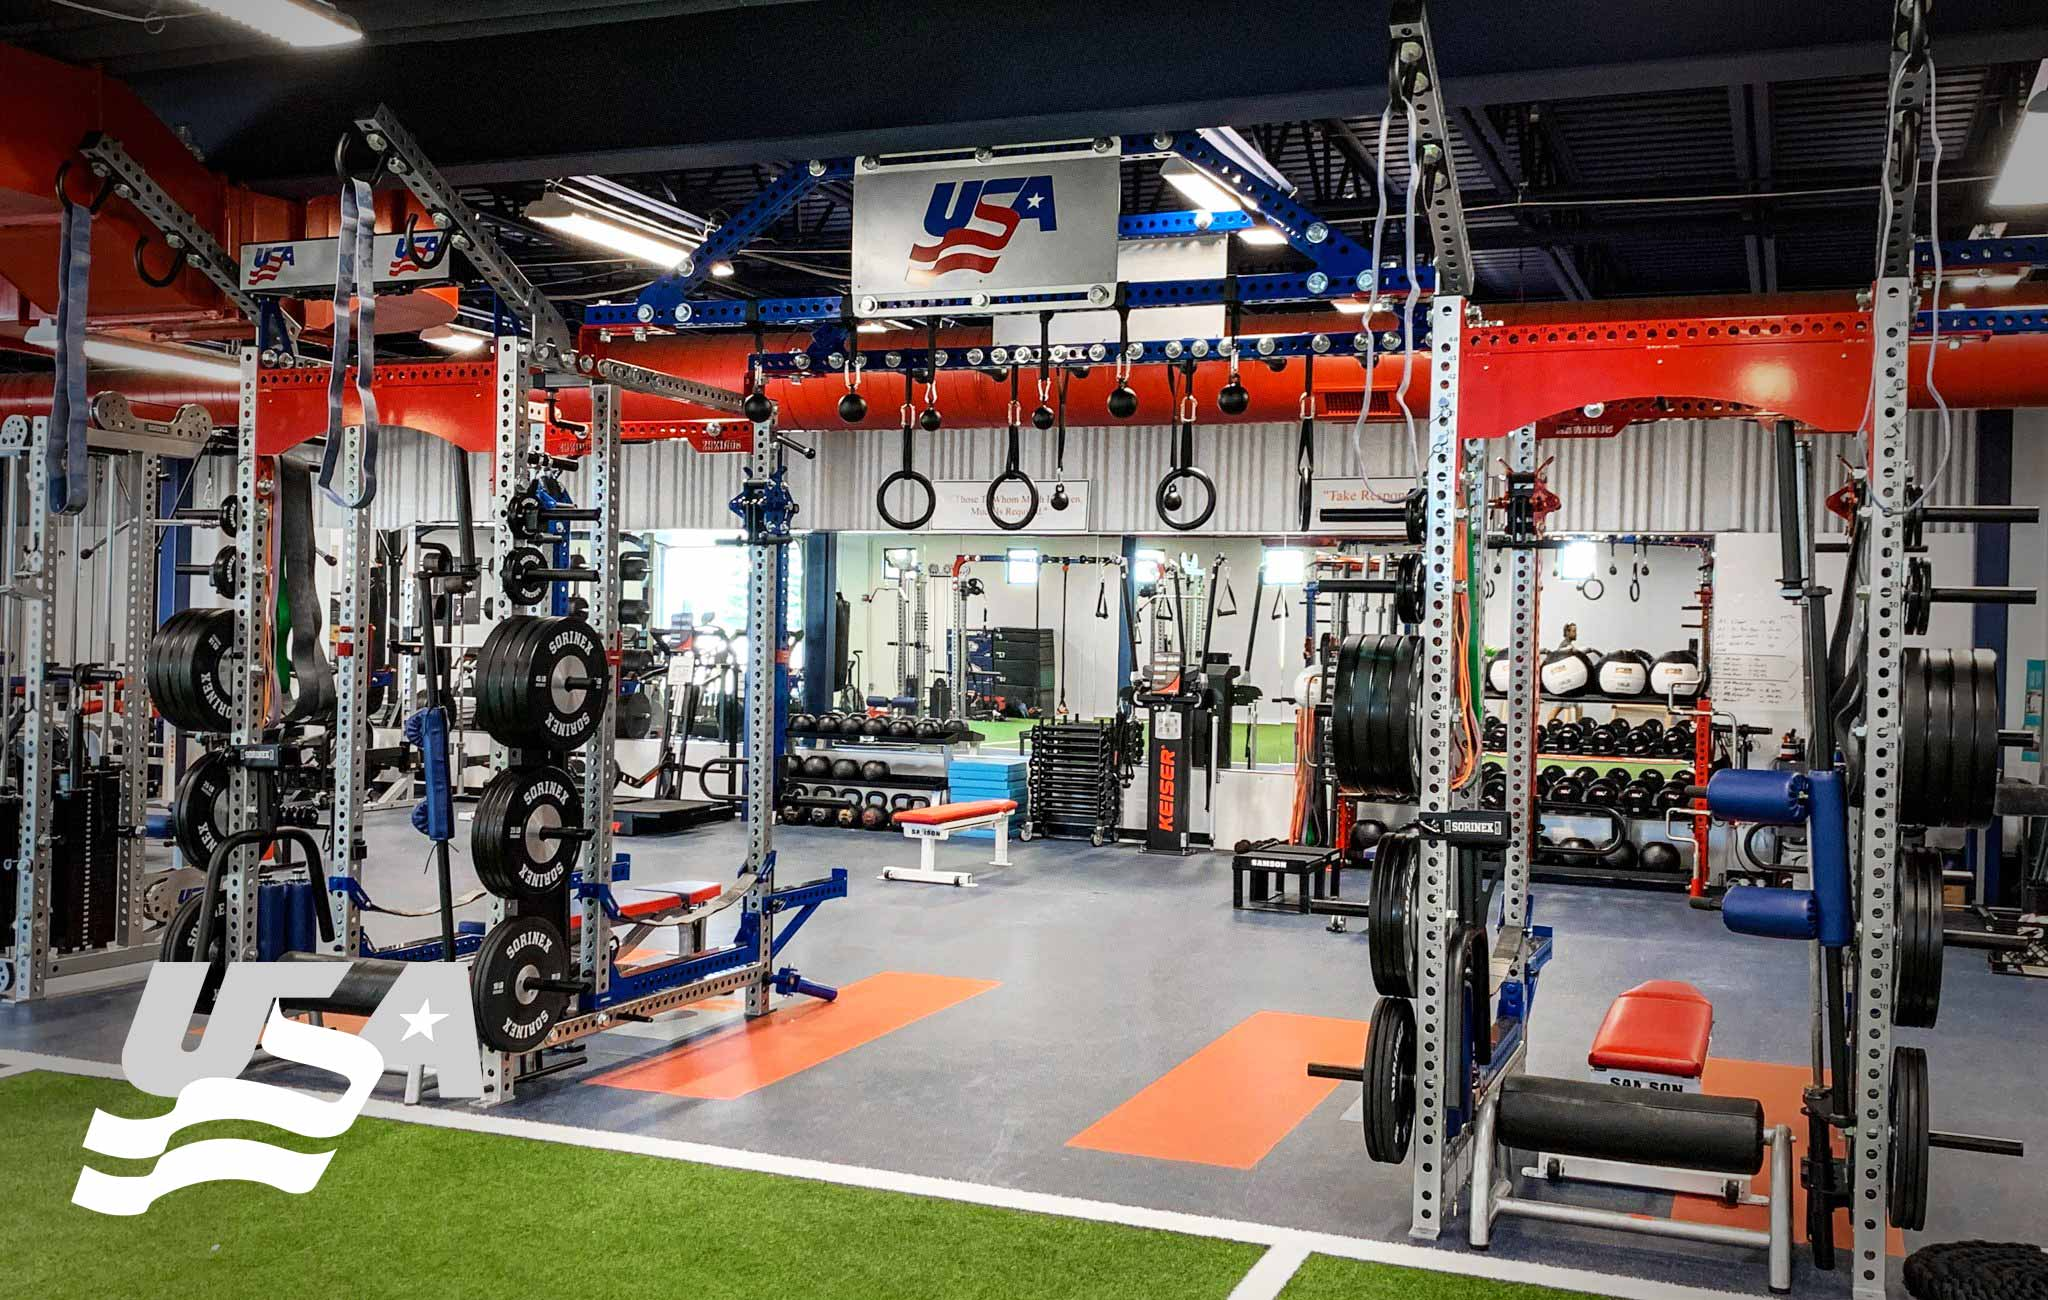 USA hockey Sorinex strength and conditioning facility